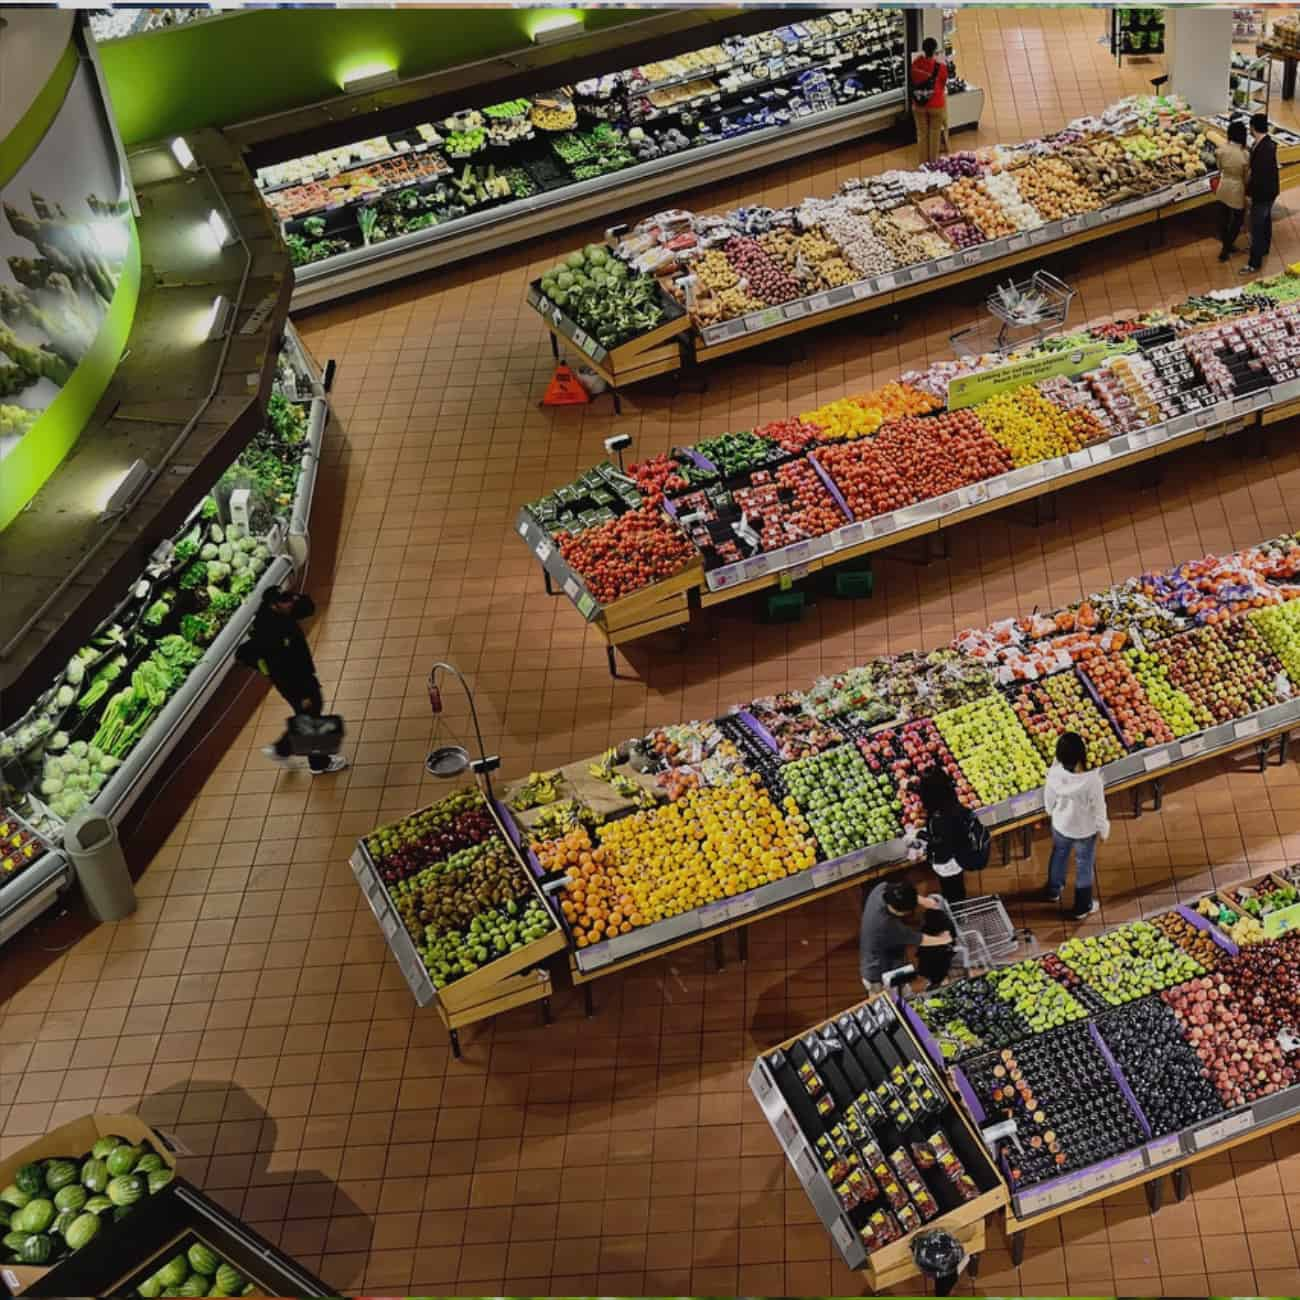 overhead view of supermarket produce section with shoppers.